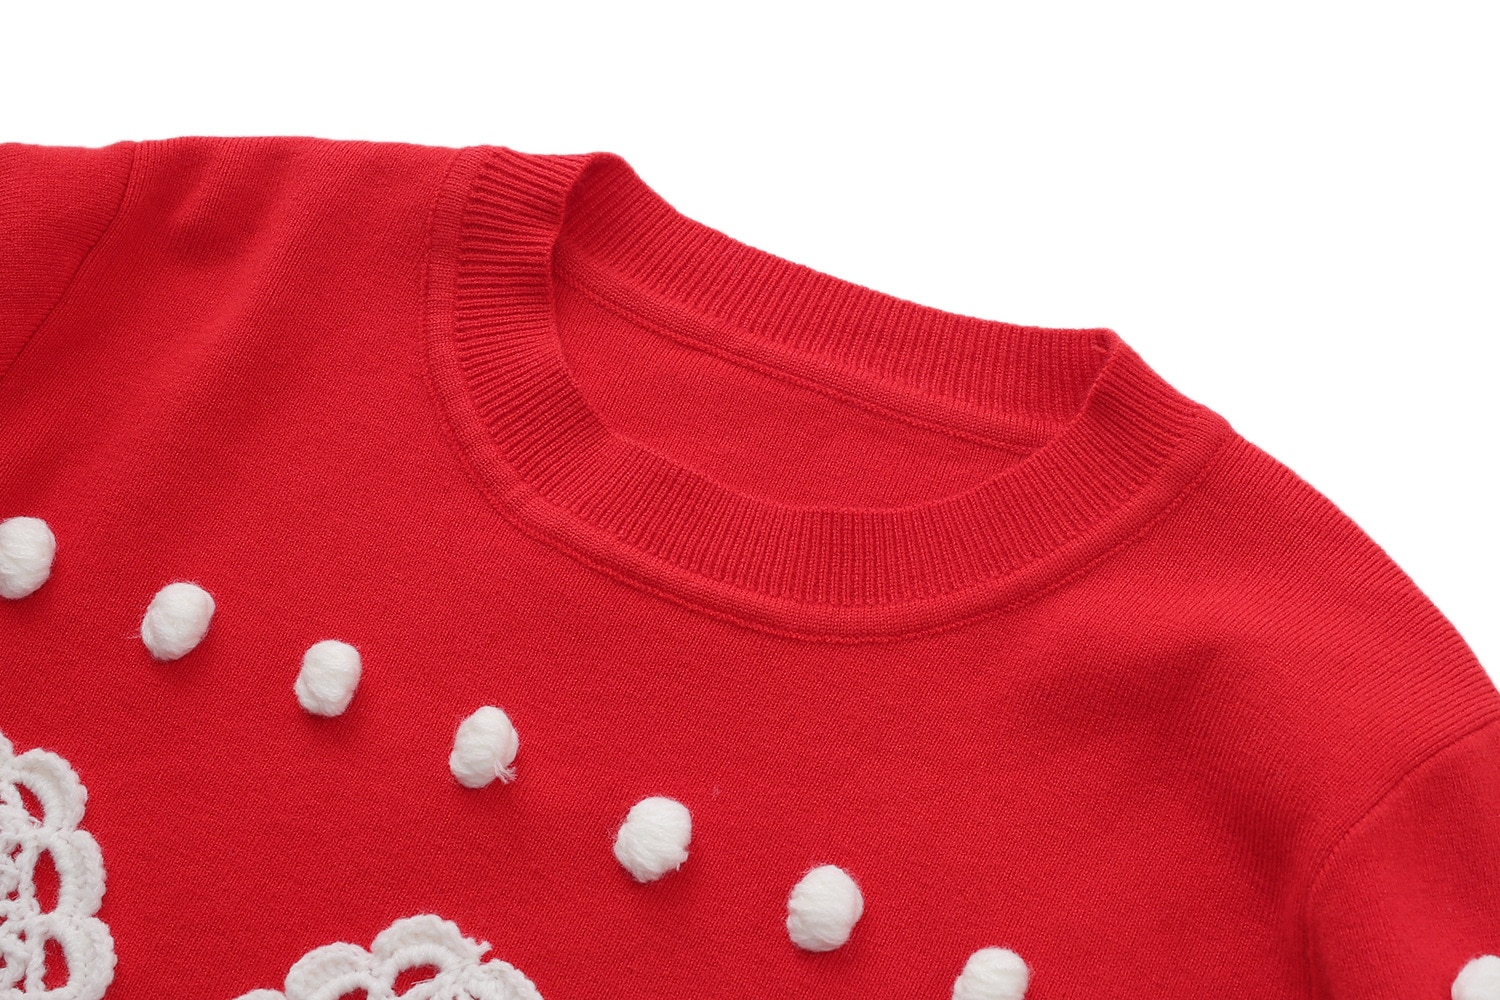 Winter  2021 Sweater Women Sweater Blue Beads Red  Crew Neck Long Sleeve Fashion Pullover  S ML enlarge